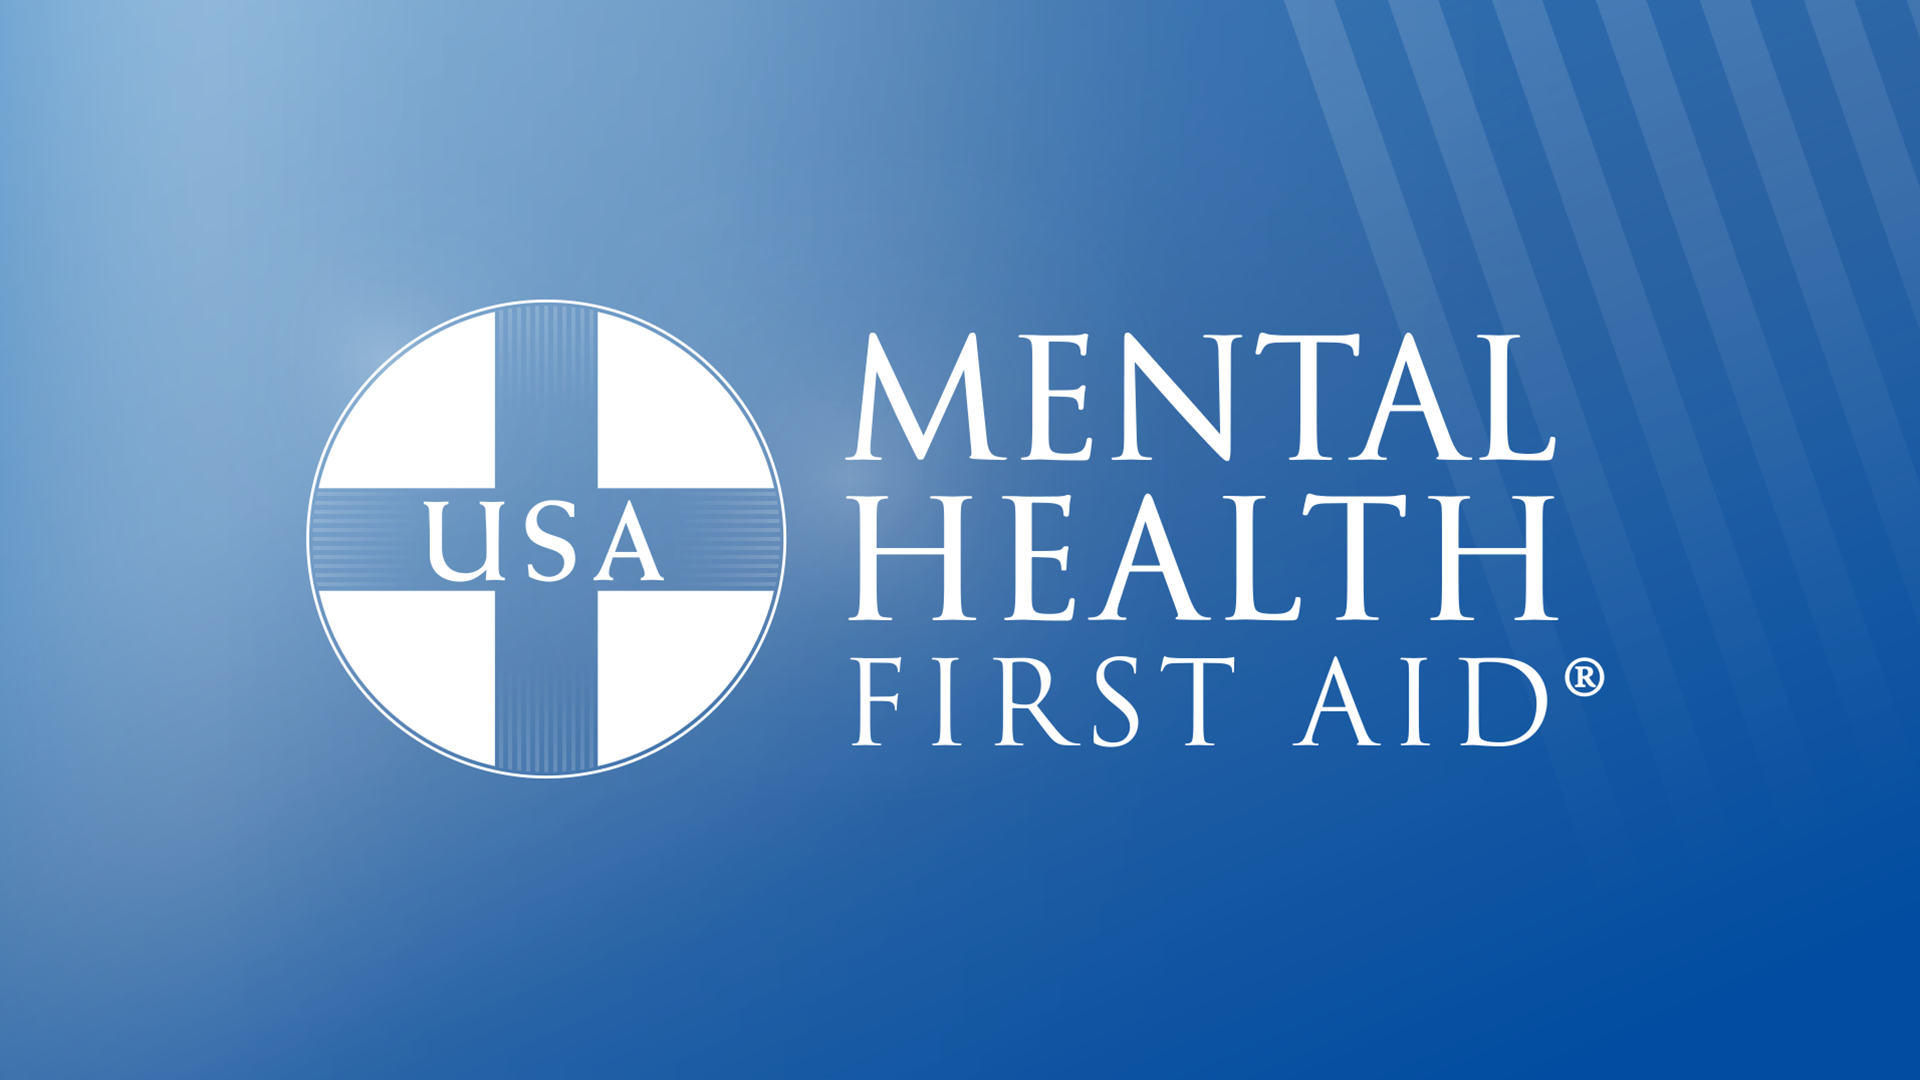 Mental Health First Aid for Butler University Students, Faculty, and Staff